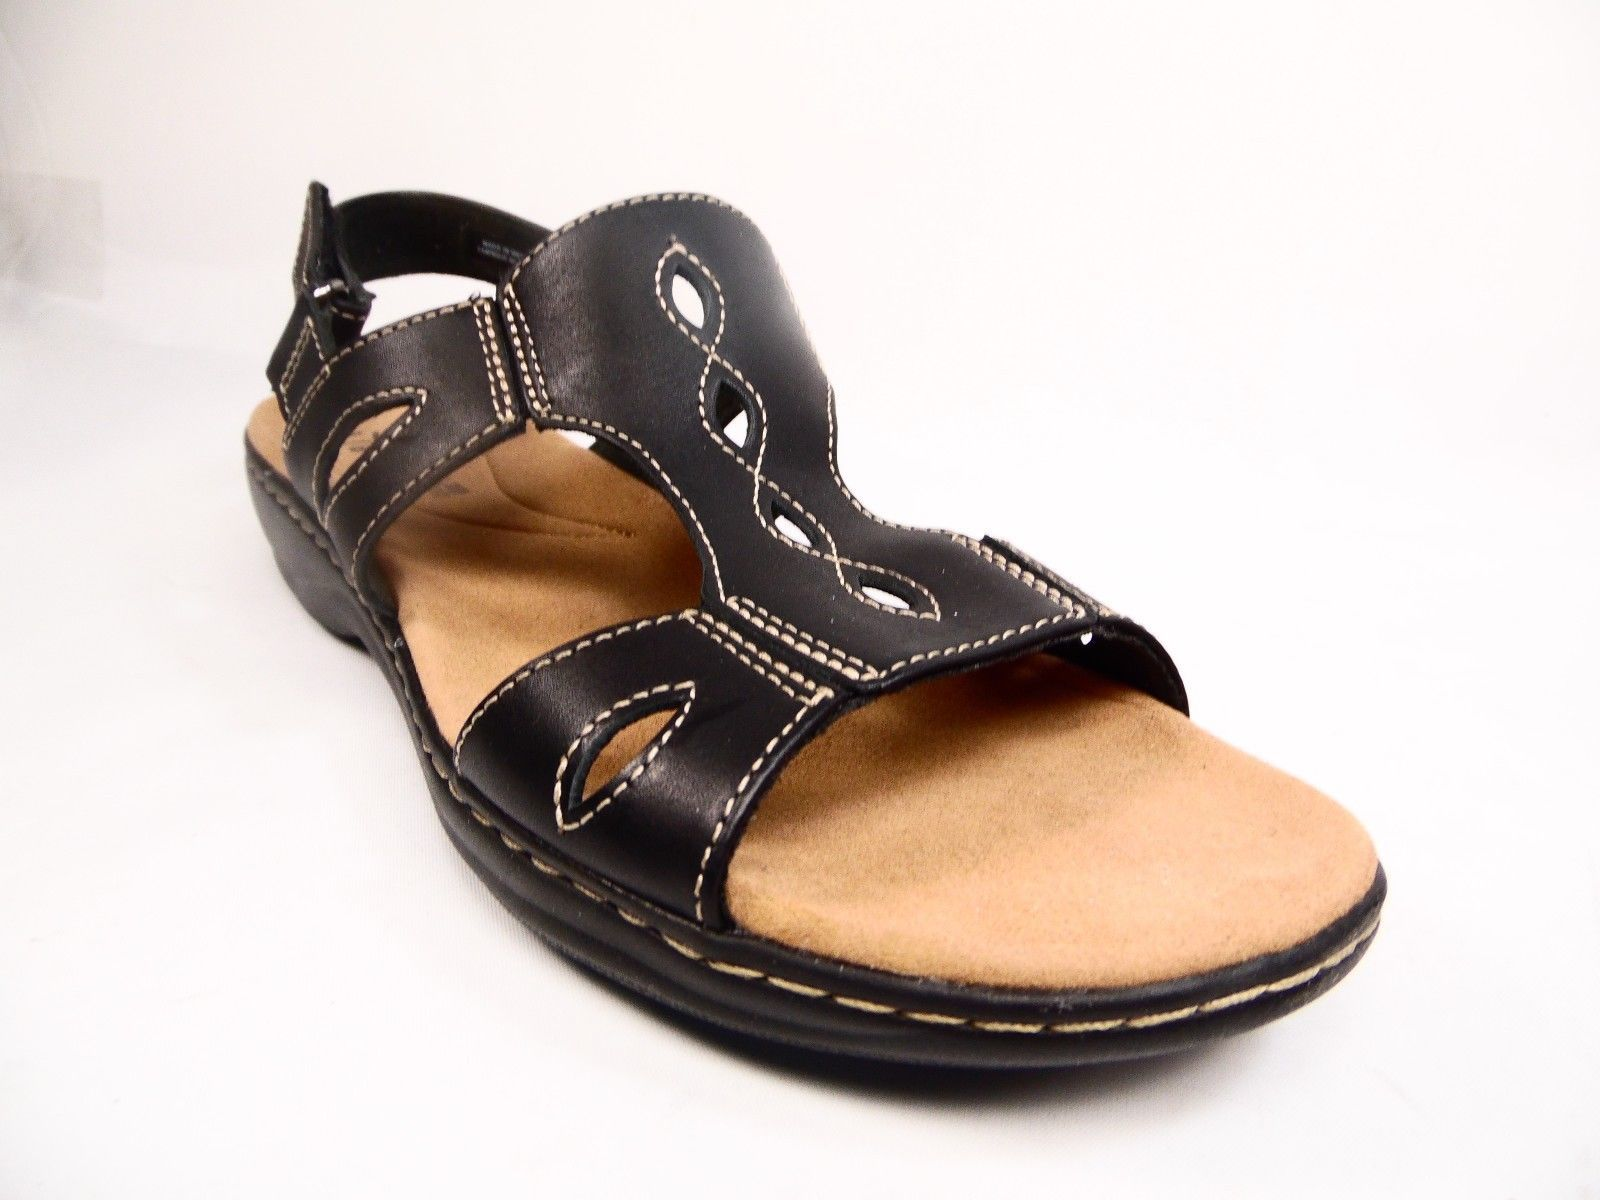 b00355d2b99 Clarks Leisa Lakelyn Leather Womens Sandal Low Heel Shoes Black Size 11M